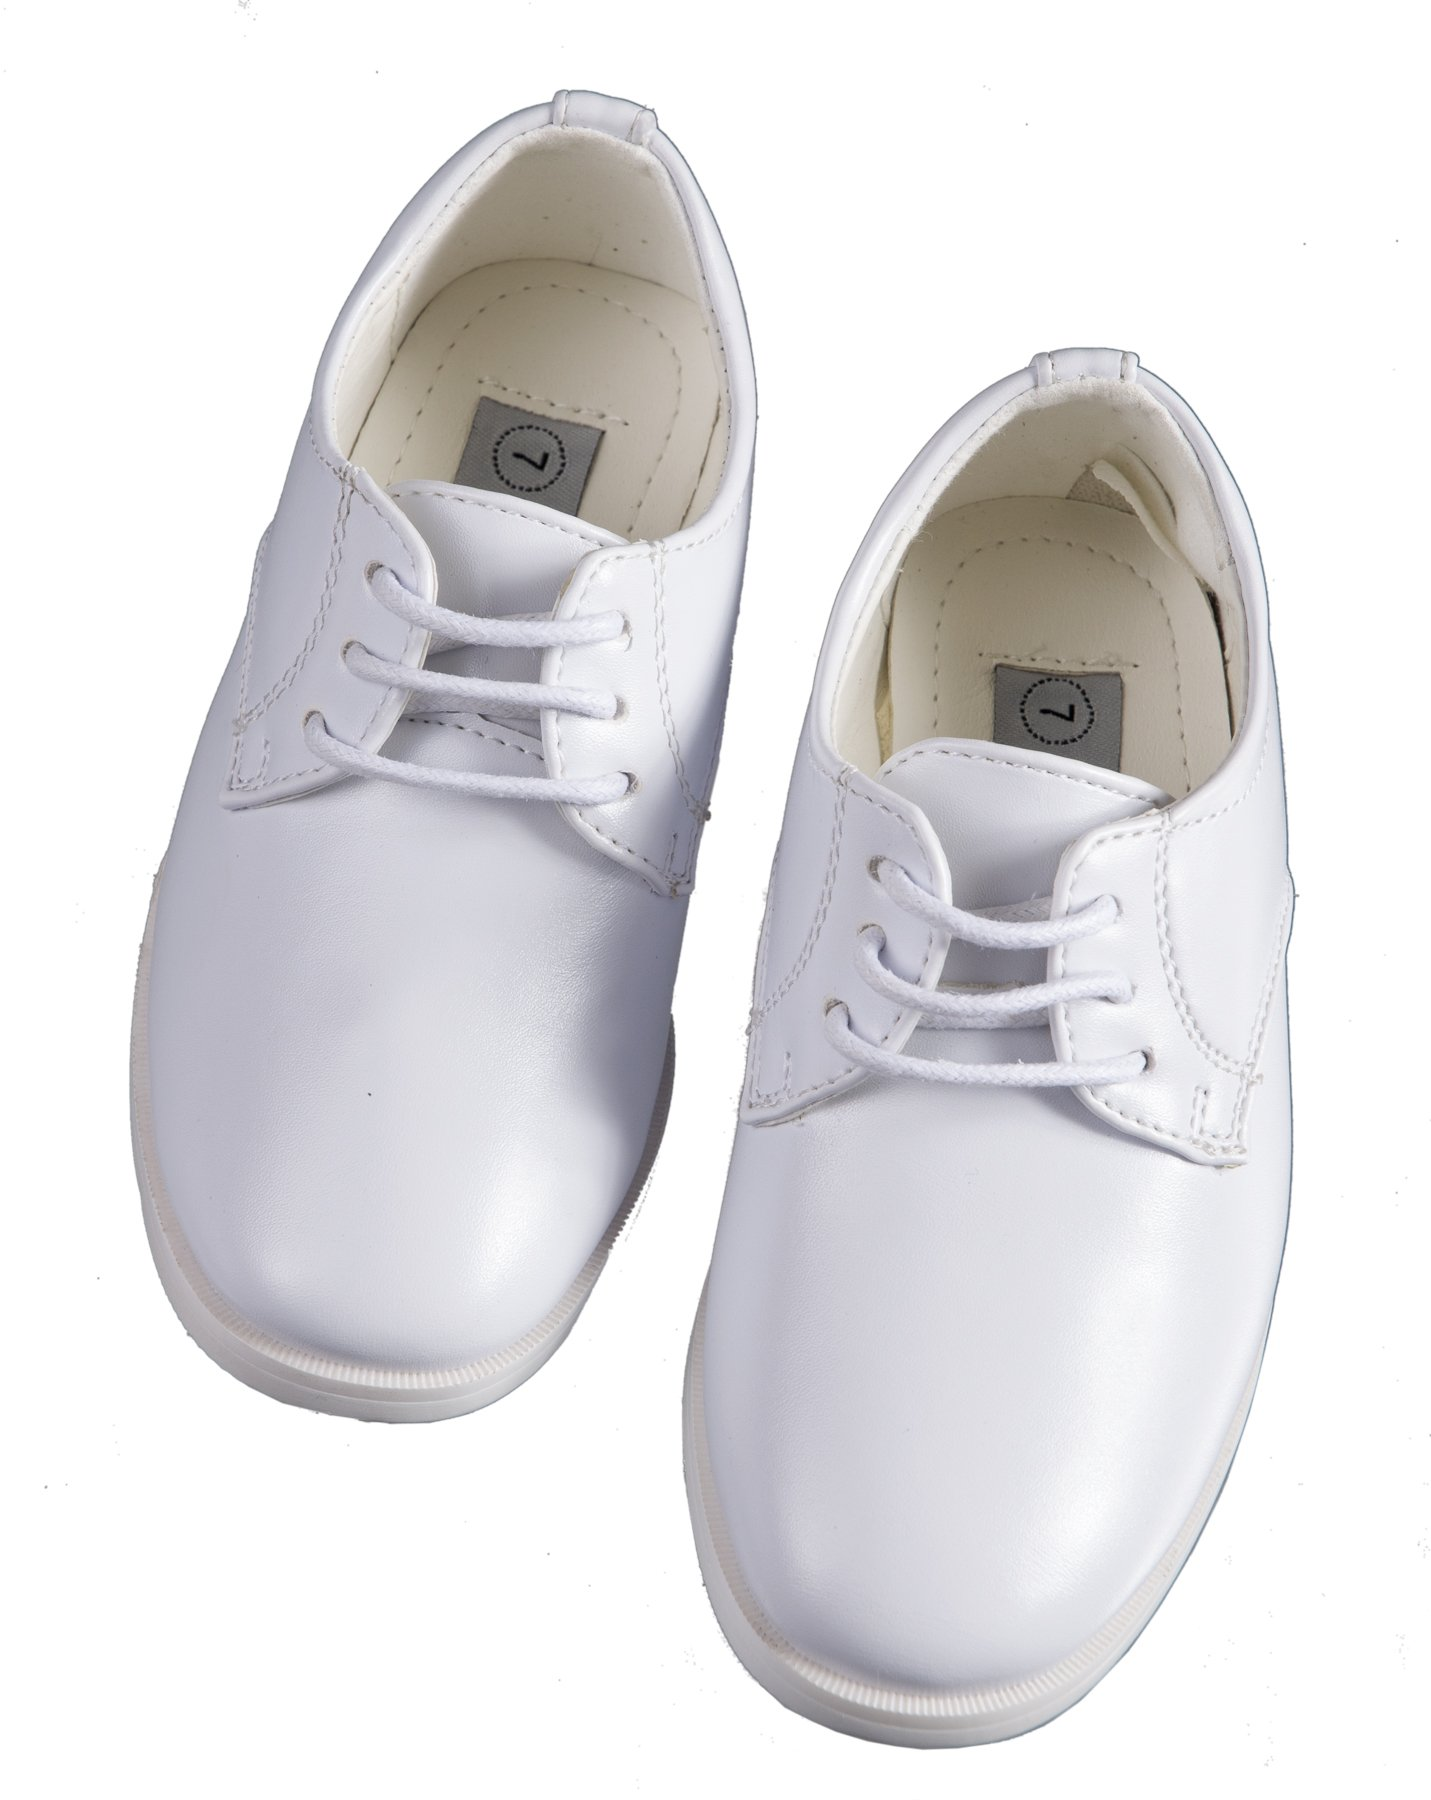 Boys White Lace Up Round Toe Dress Shoes - Wedding - First Communion (10 M US Toddler)